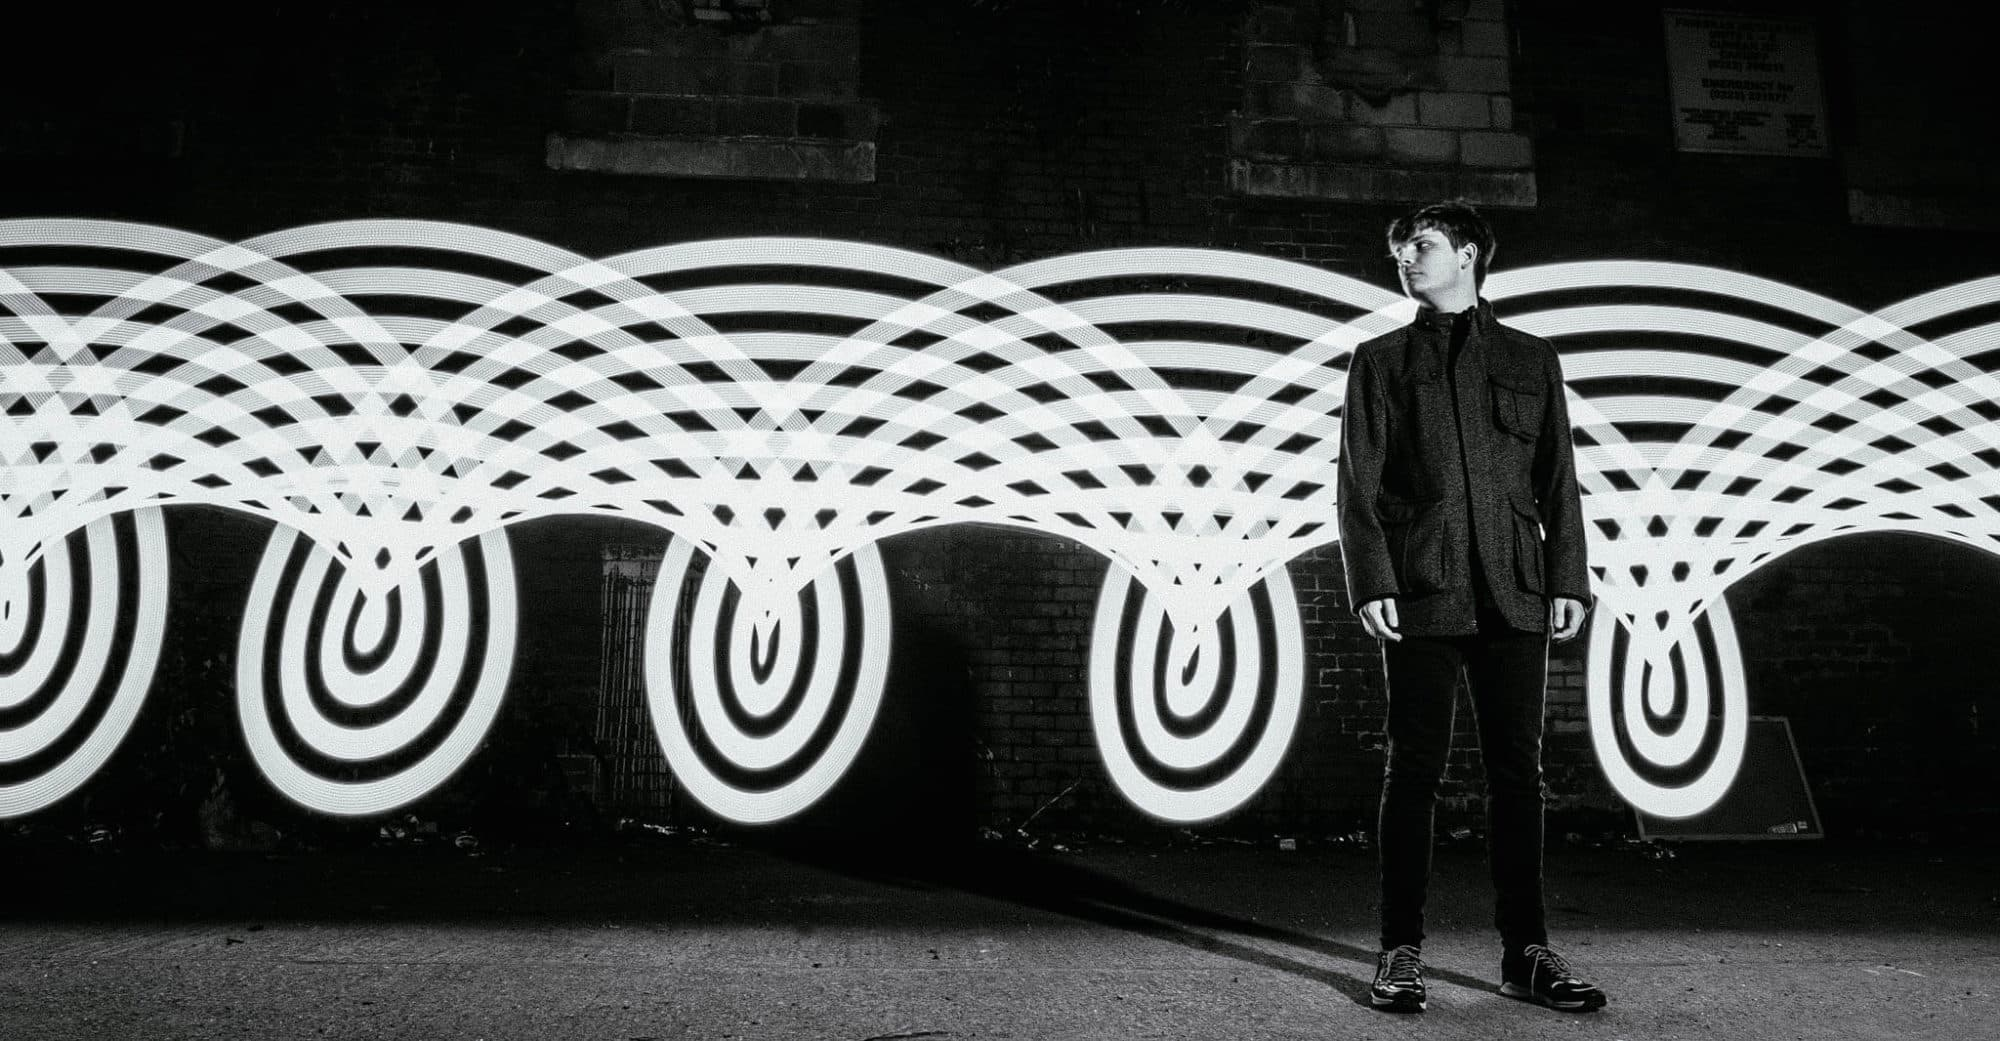 Light painting using a pixelstick by Music Band Photographer Cardiff of artist Midtide